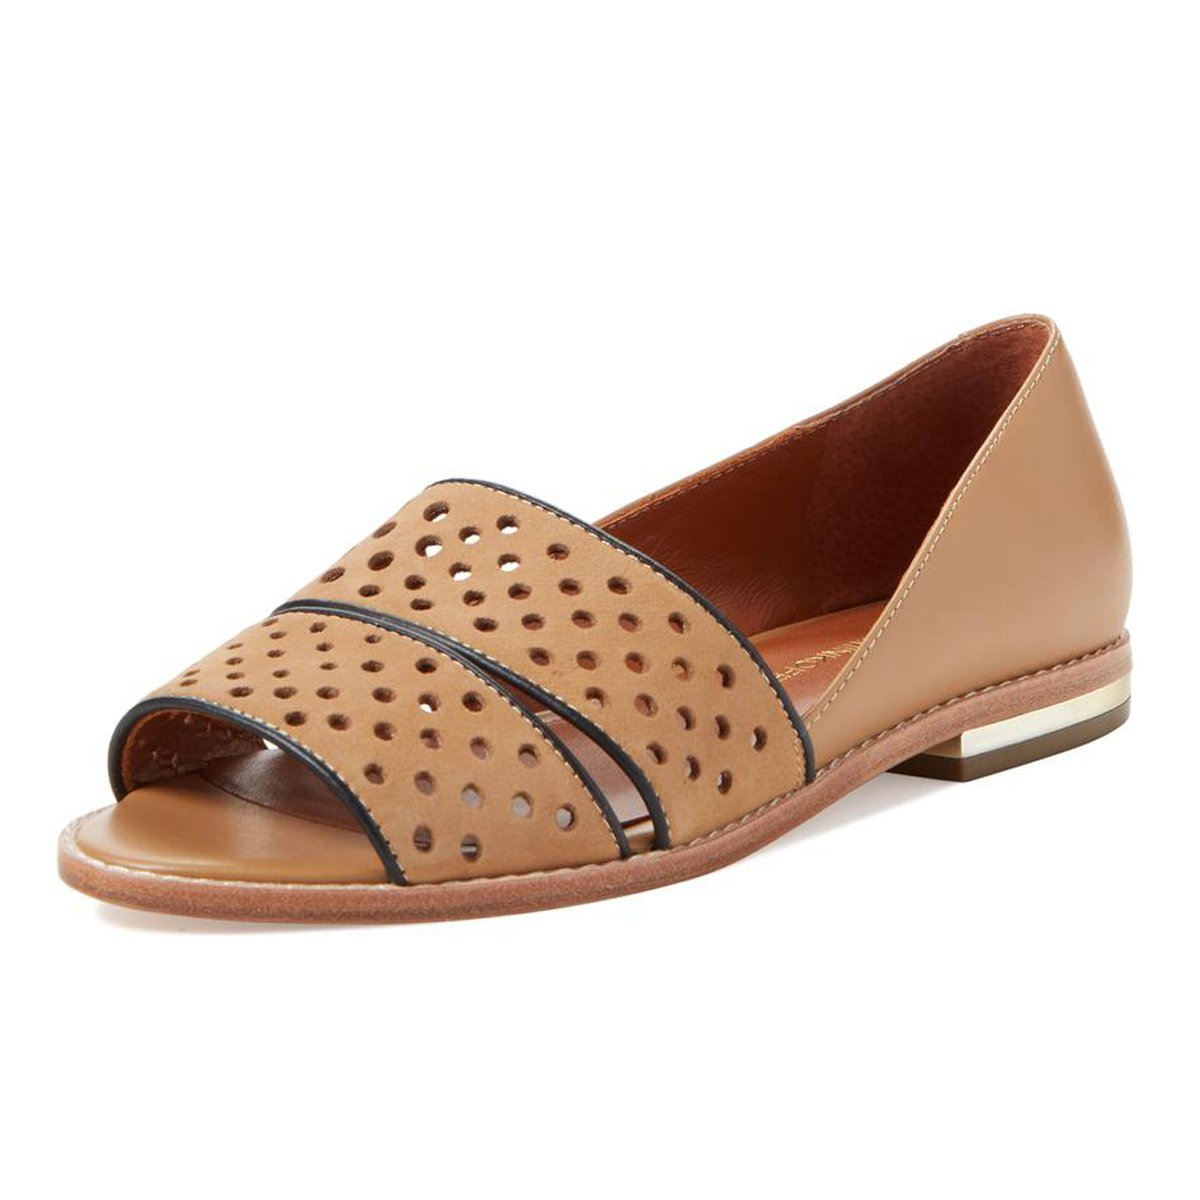 Rebecca Minkoff Women's Sadie Perforated Leather Flats US 7.5 Tan